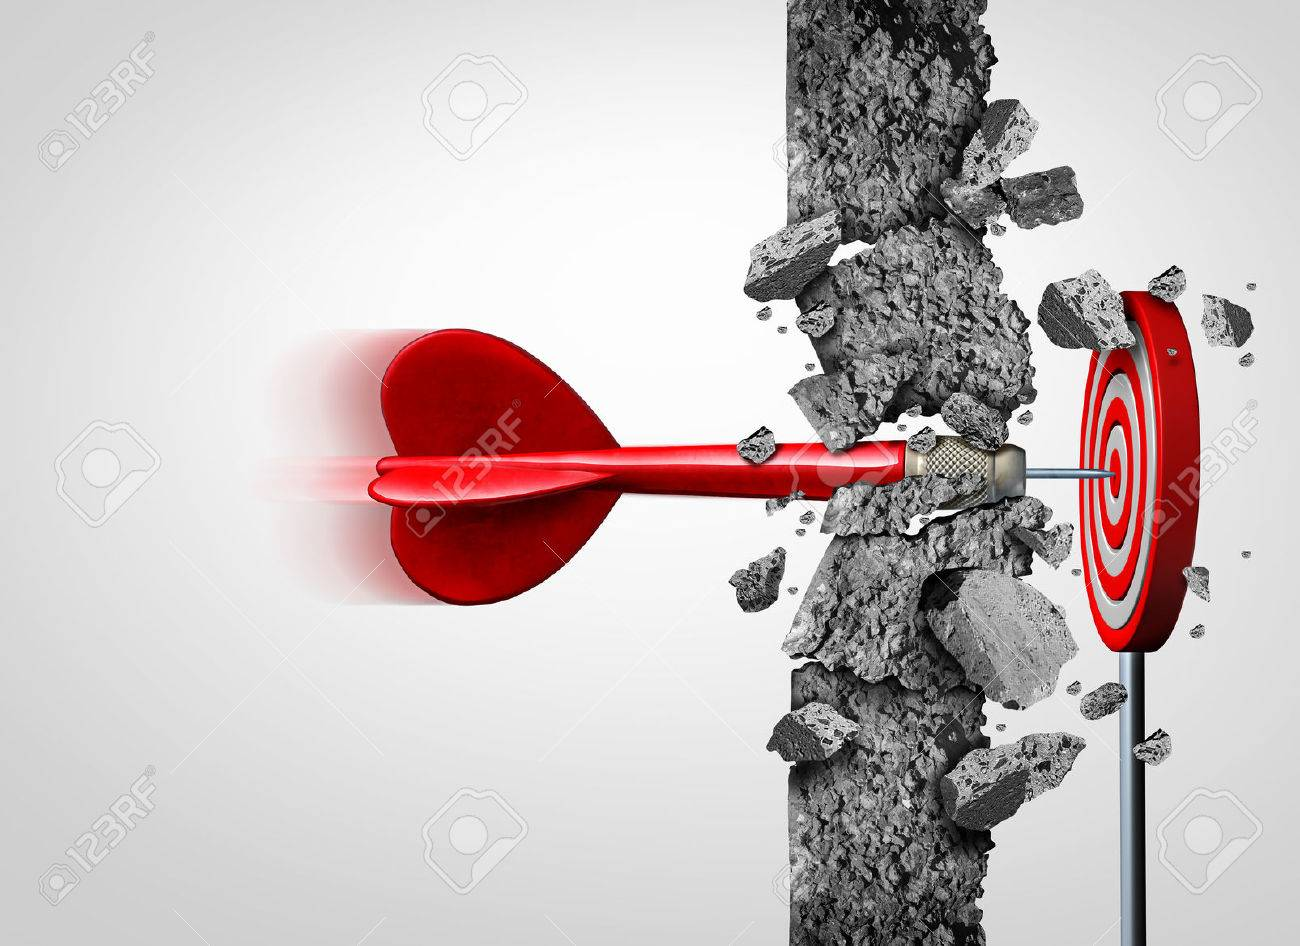 Breaking Through for success without limits and overcoming obstacles as a concrete wall to achieve a goal as a metaphor for a cure or business goals and hitting a financial target with 3D illustration elements. Stock Photo - 66522893